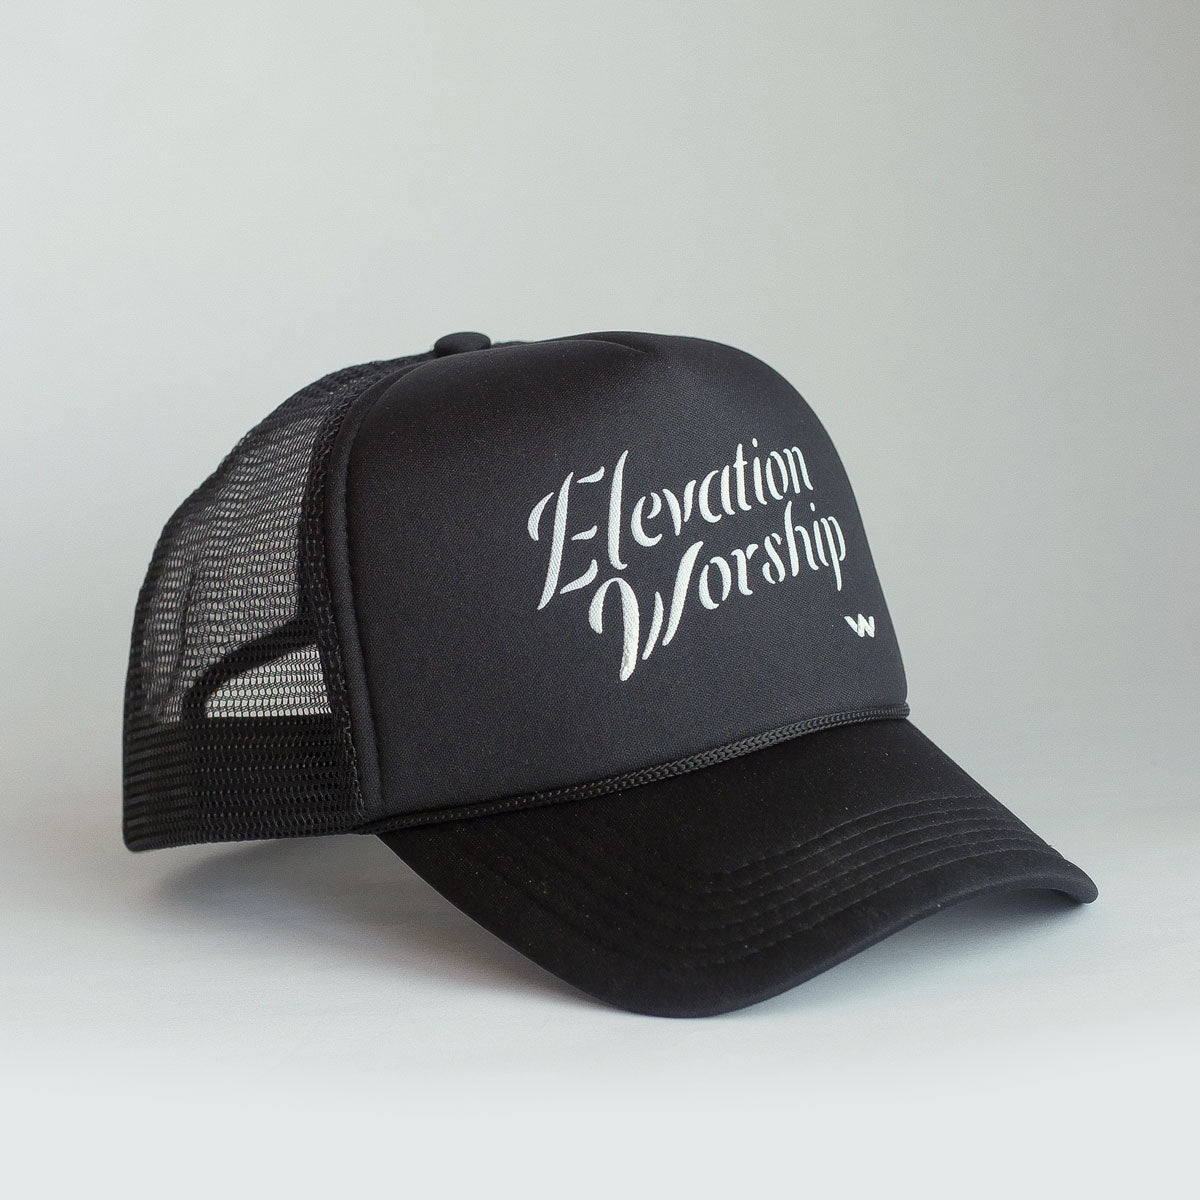 'Elevation Worship' Trucker Hat